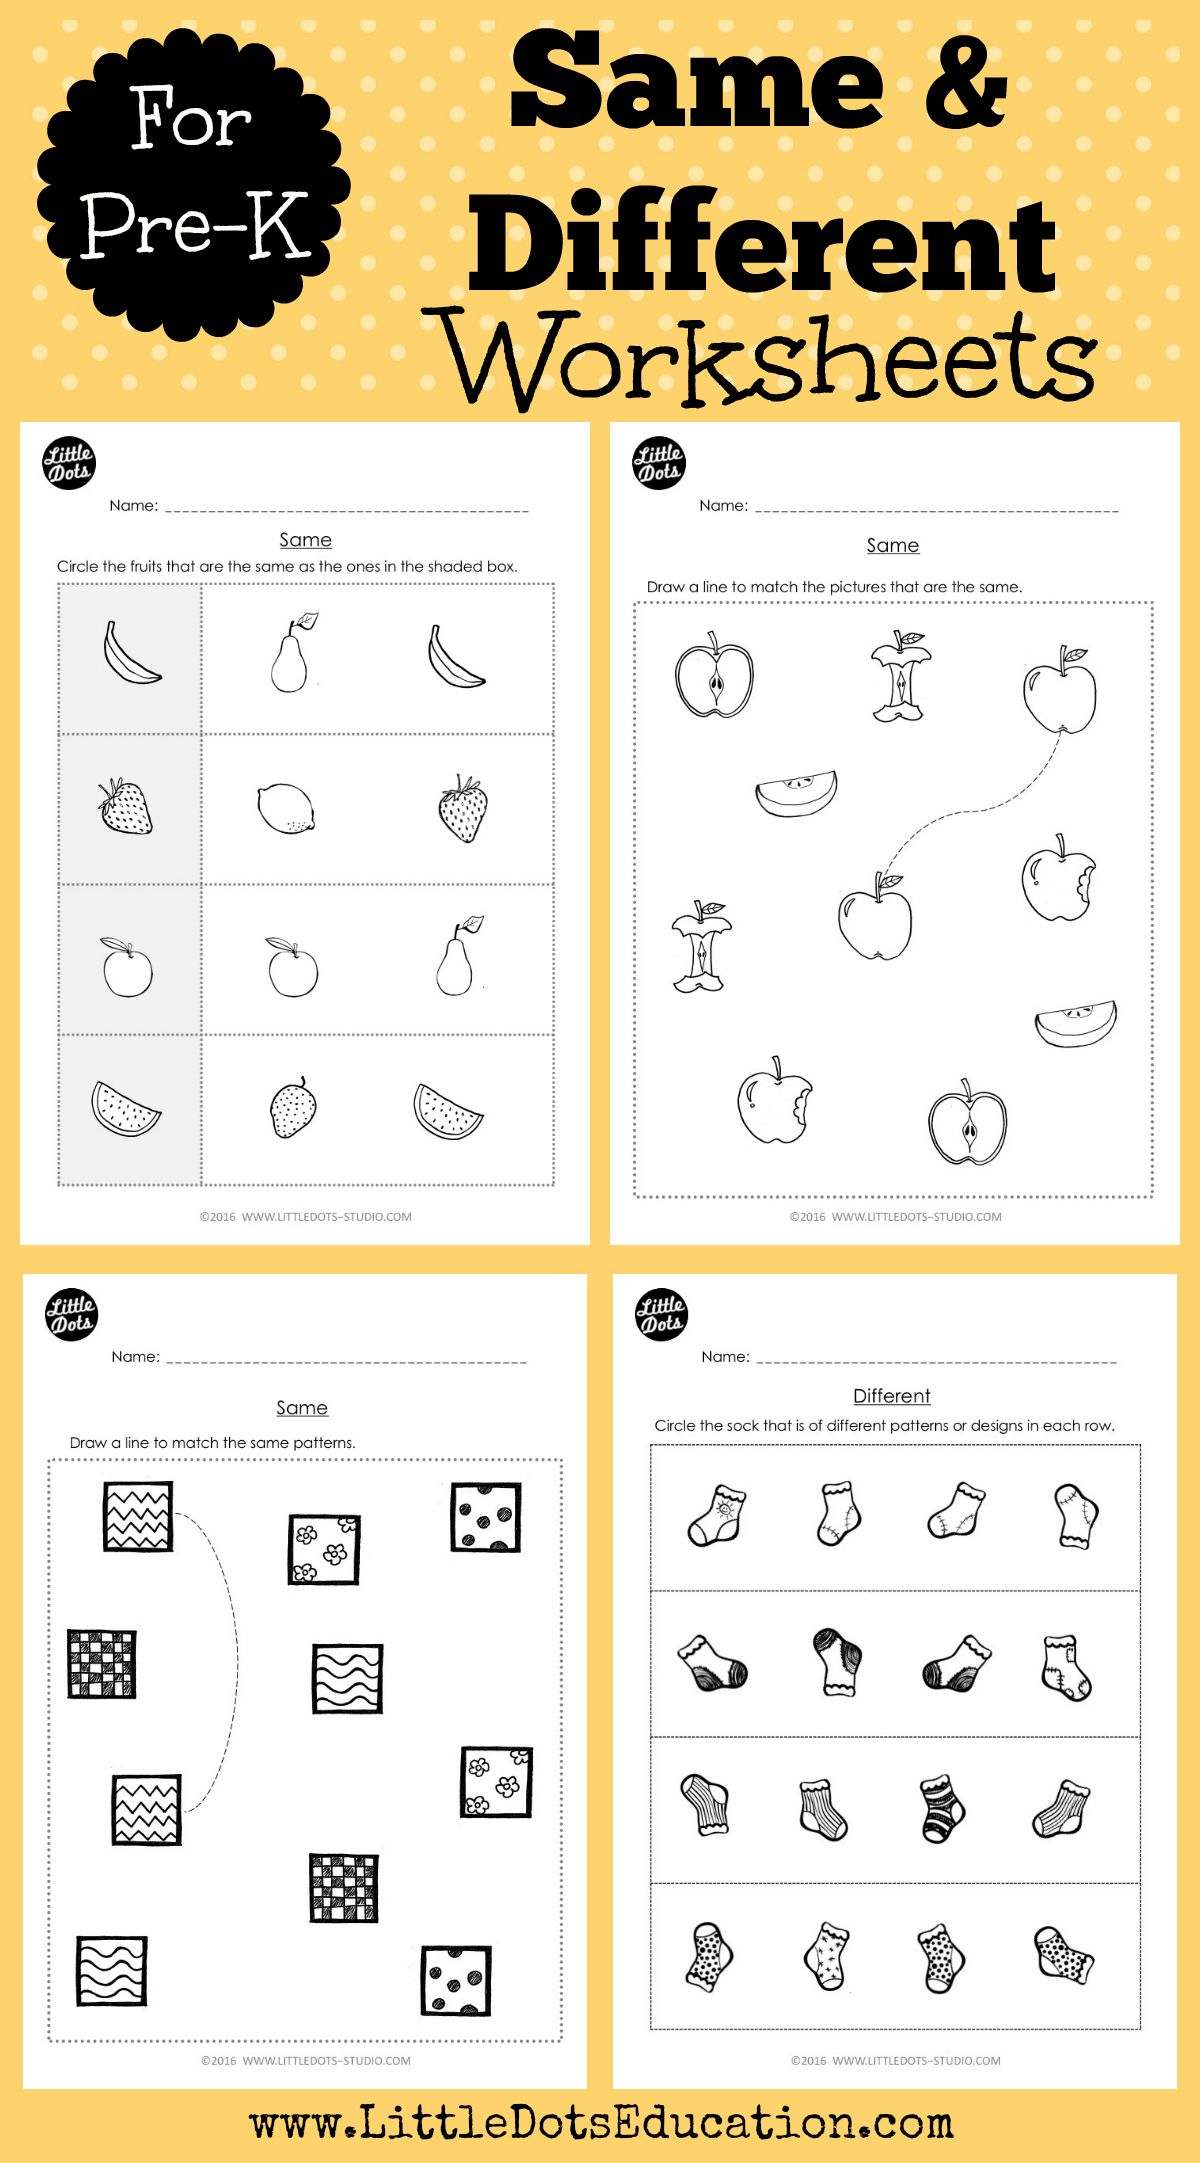 Download Worksheets And Activities To Learn The Concept Of